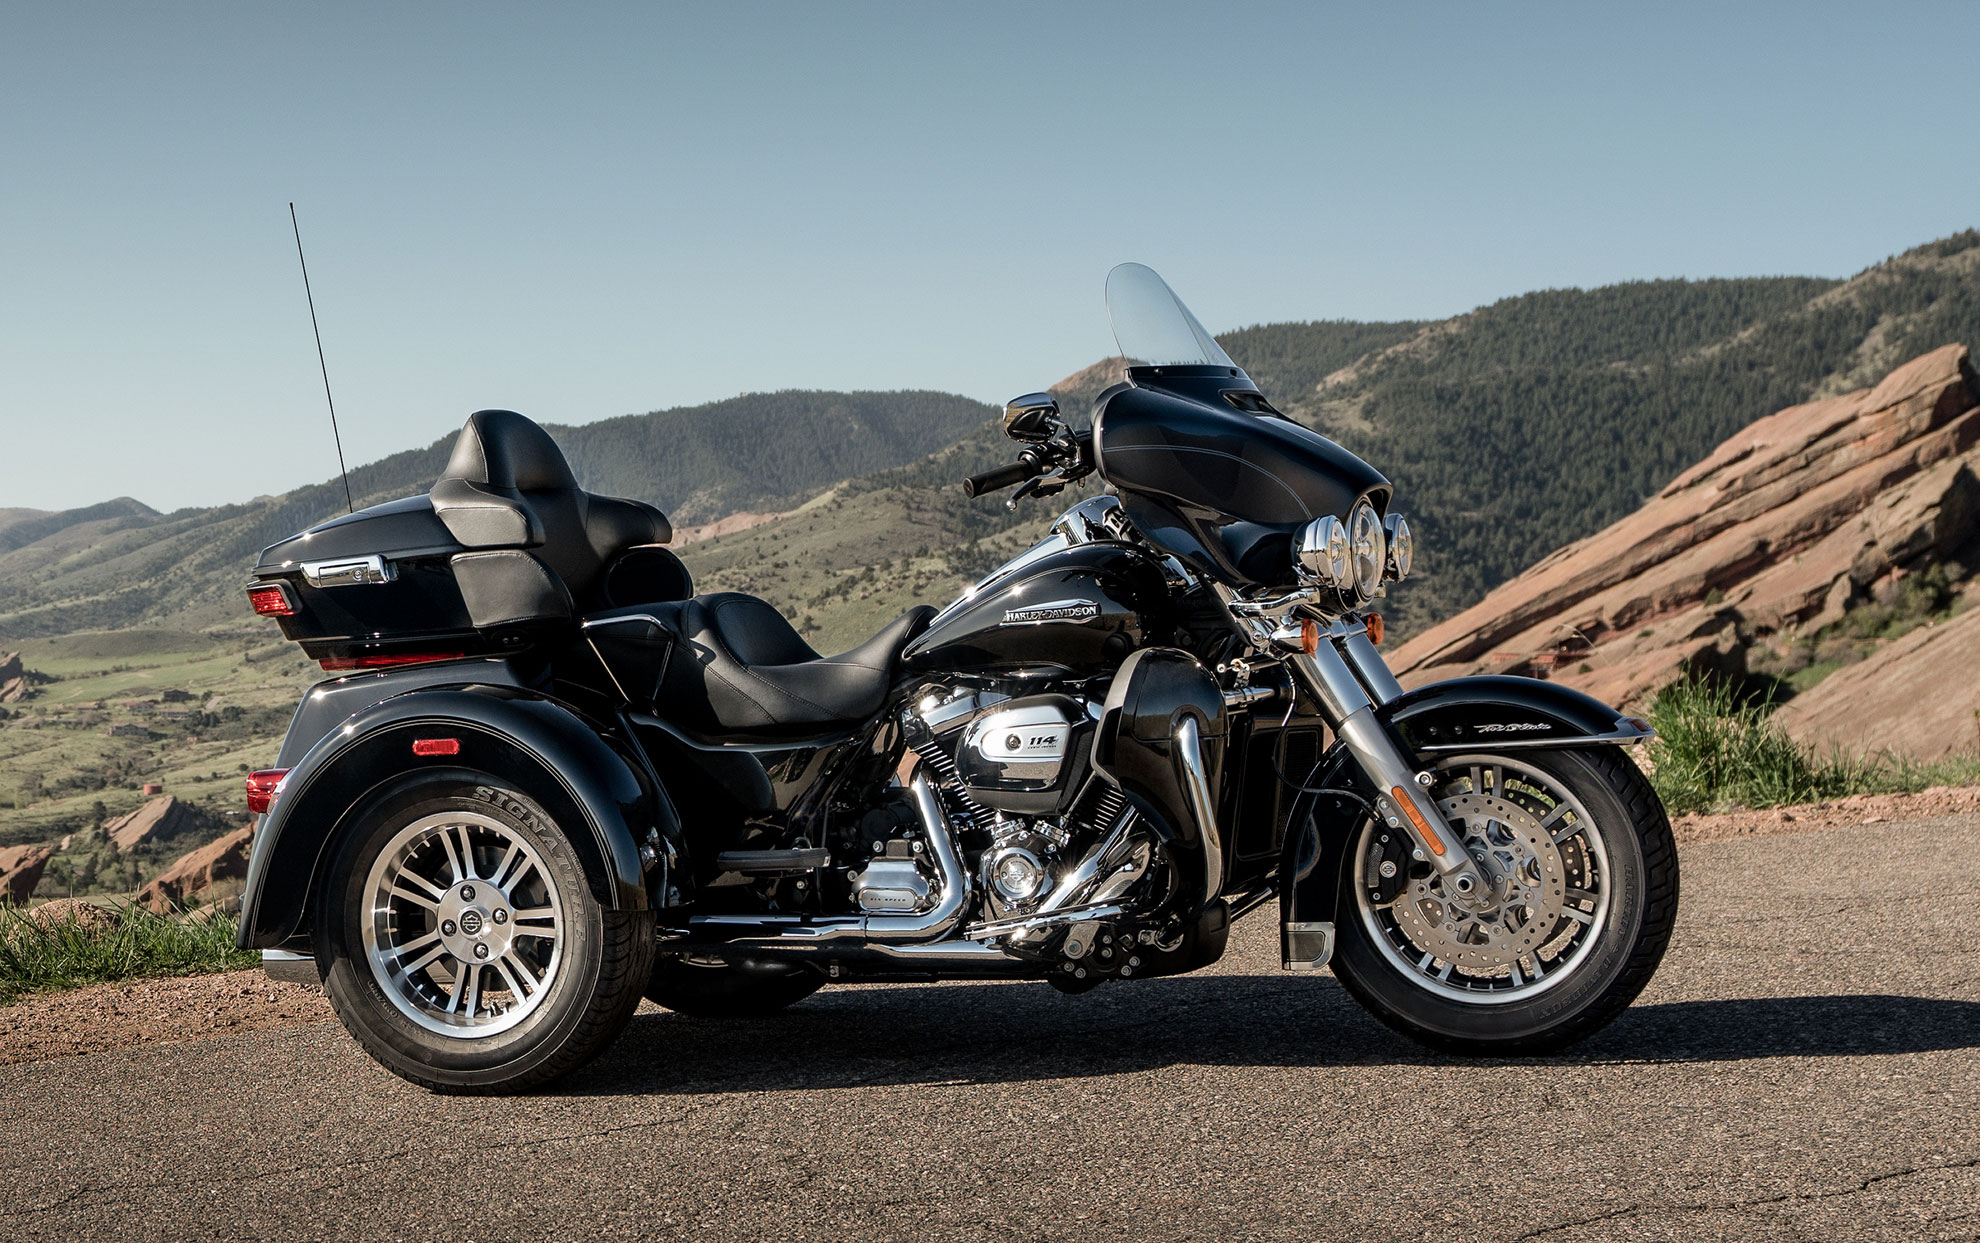 2016 Harley Davidson Tri Glide Ultra Confidence And: 2019 Harley-Davidson Tri-Glide Ultra And Freewheeler Updates